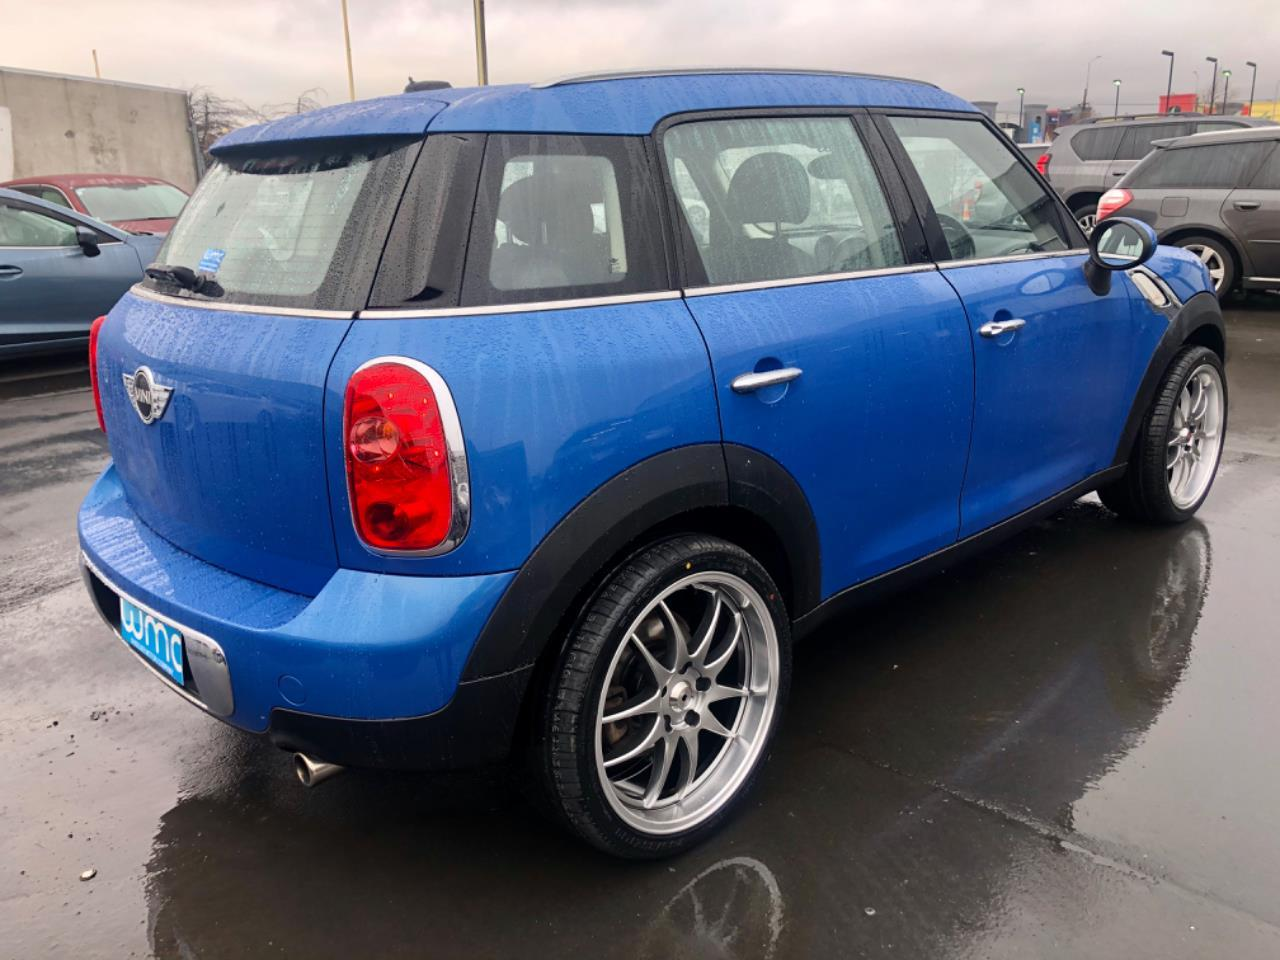 image-10, 2013 Mini Countryman Crossover at Christchurch